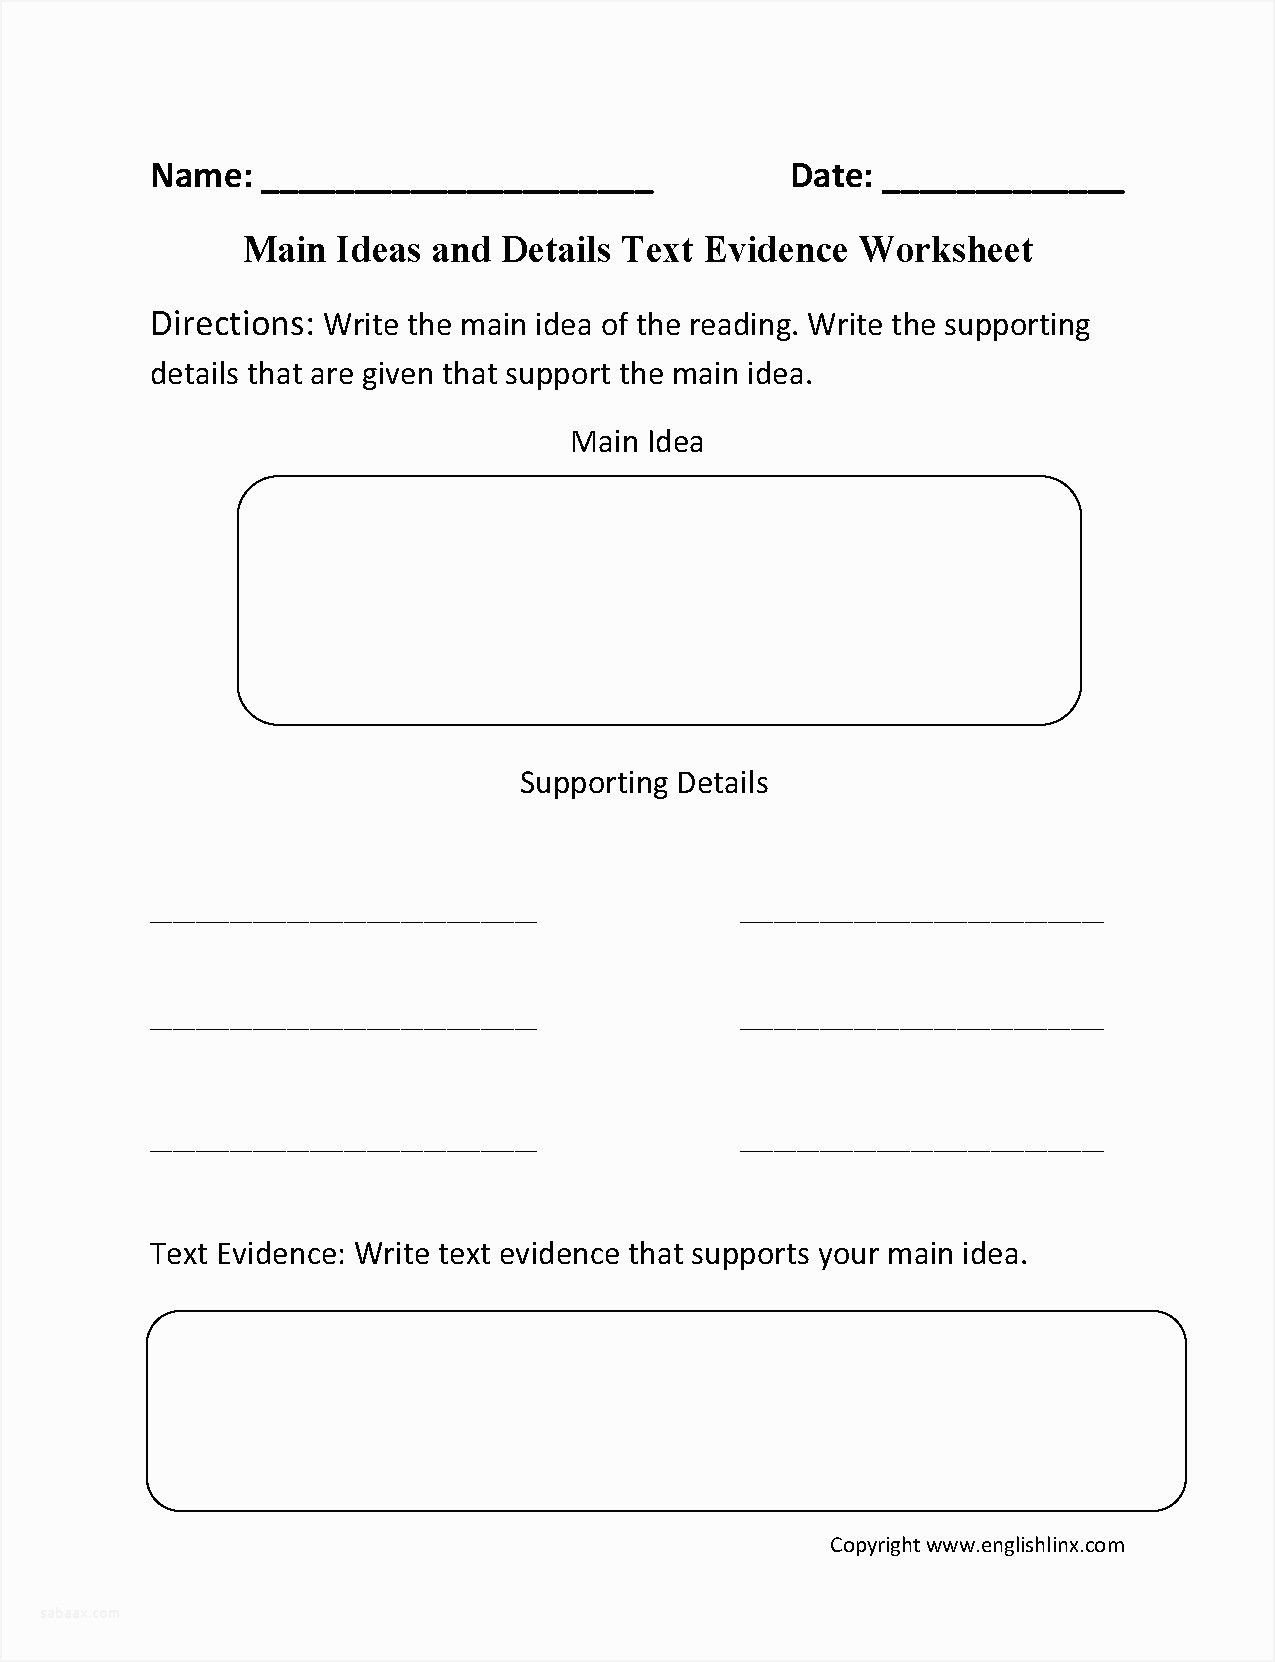 theme worksheets 3rd grade to her with theme worksheets 5th grade of theme worksheets 3rd grade